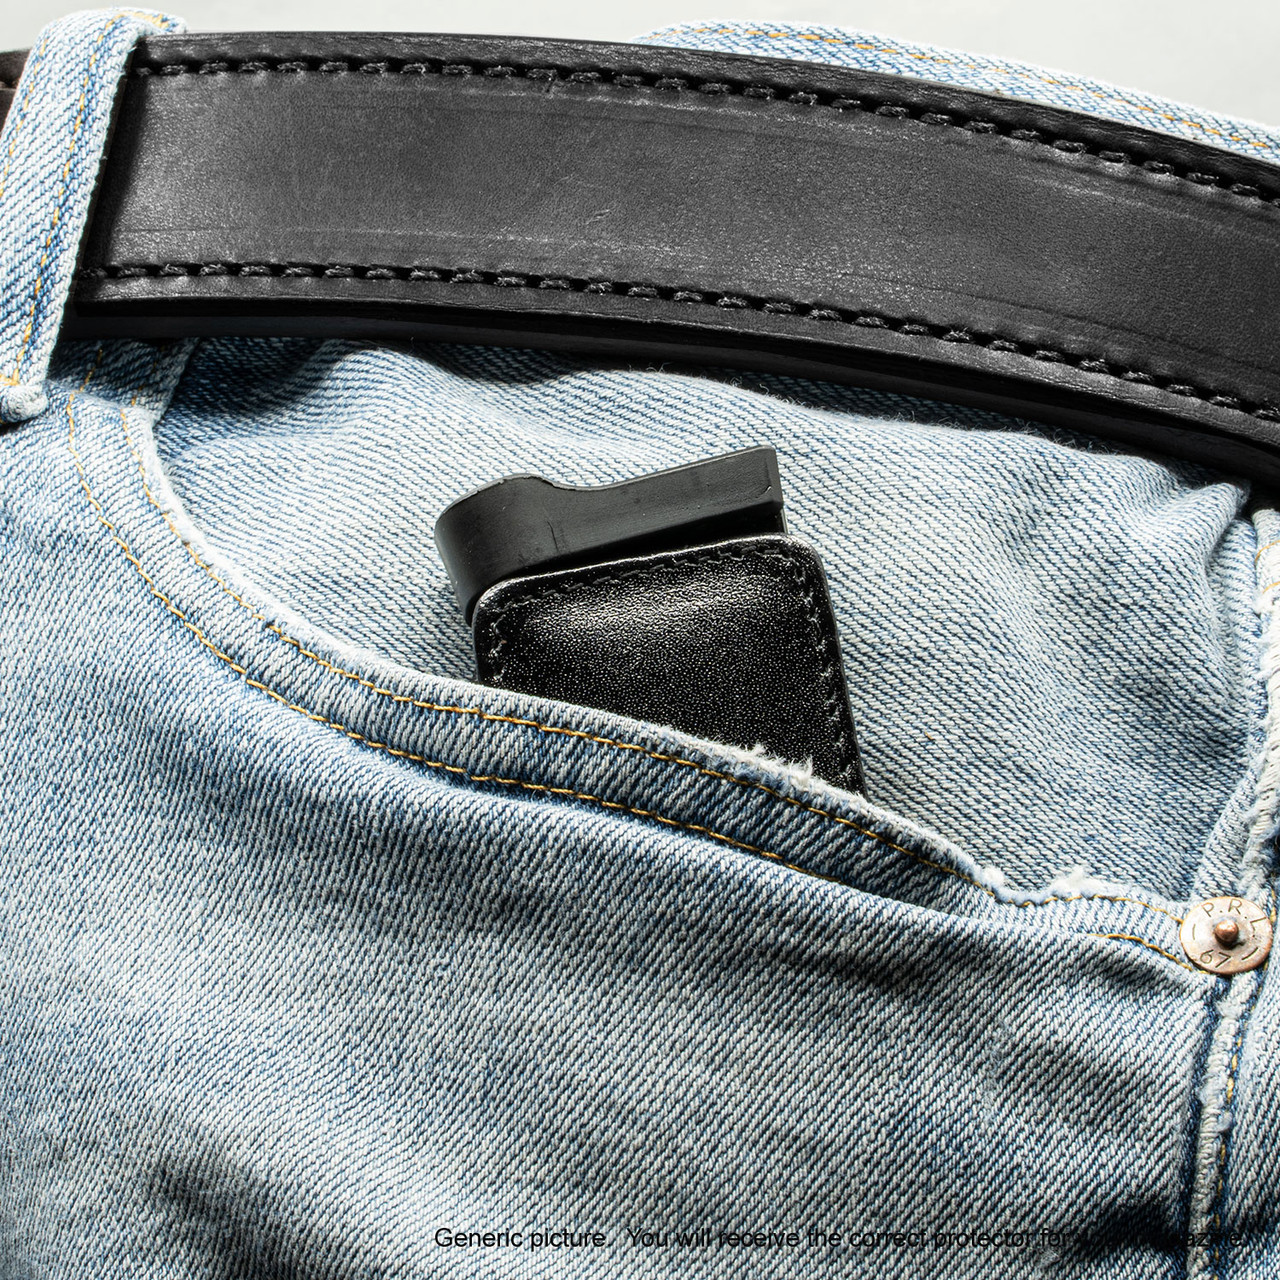 Springfield XDS 9mm Black Leather Magazine Pocket Protector